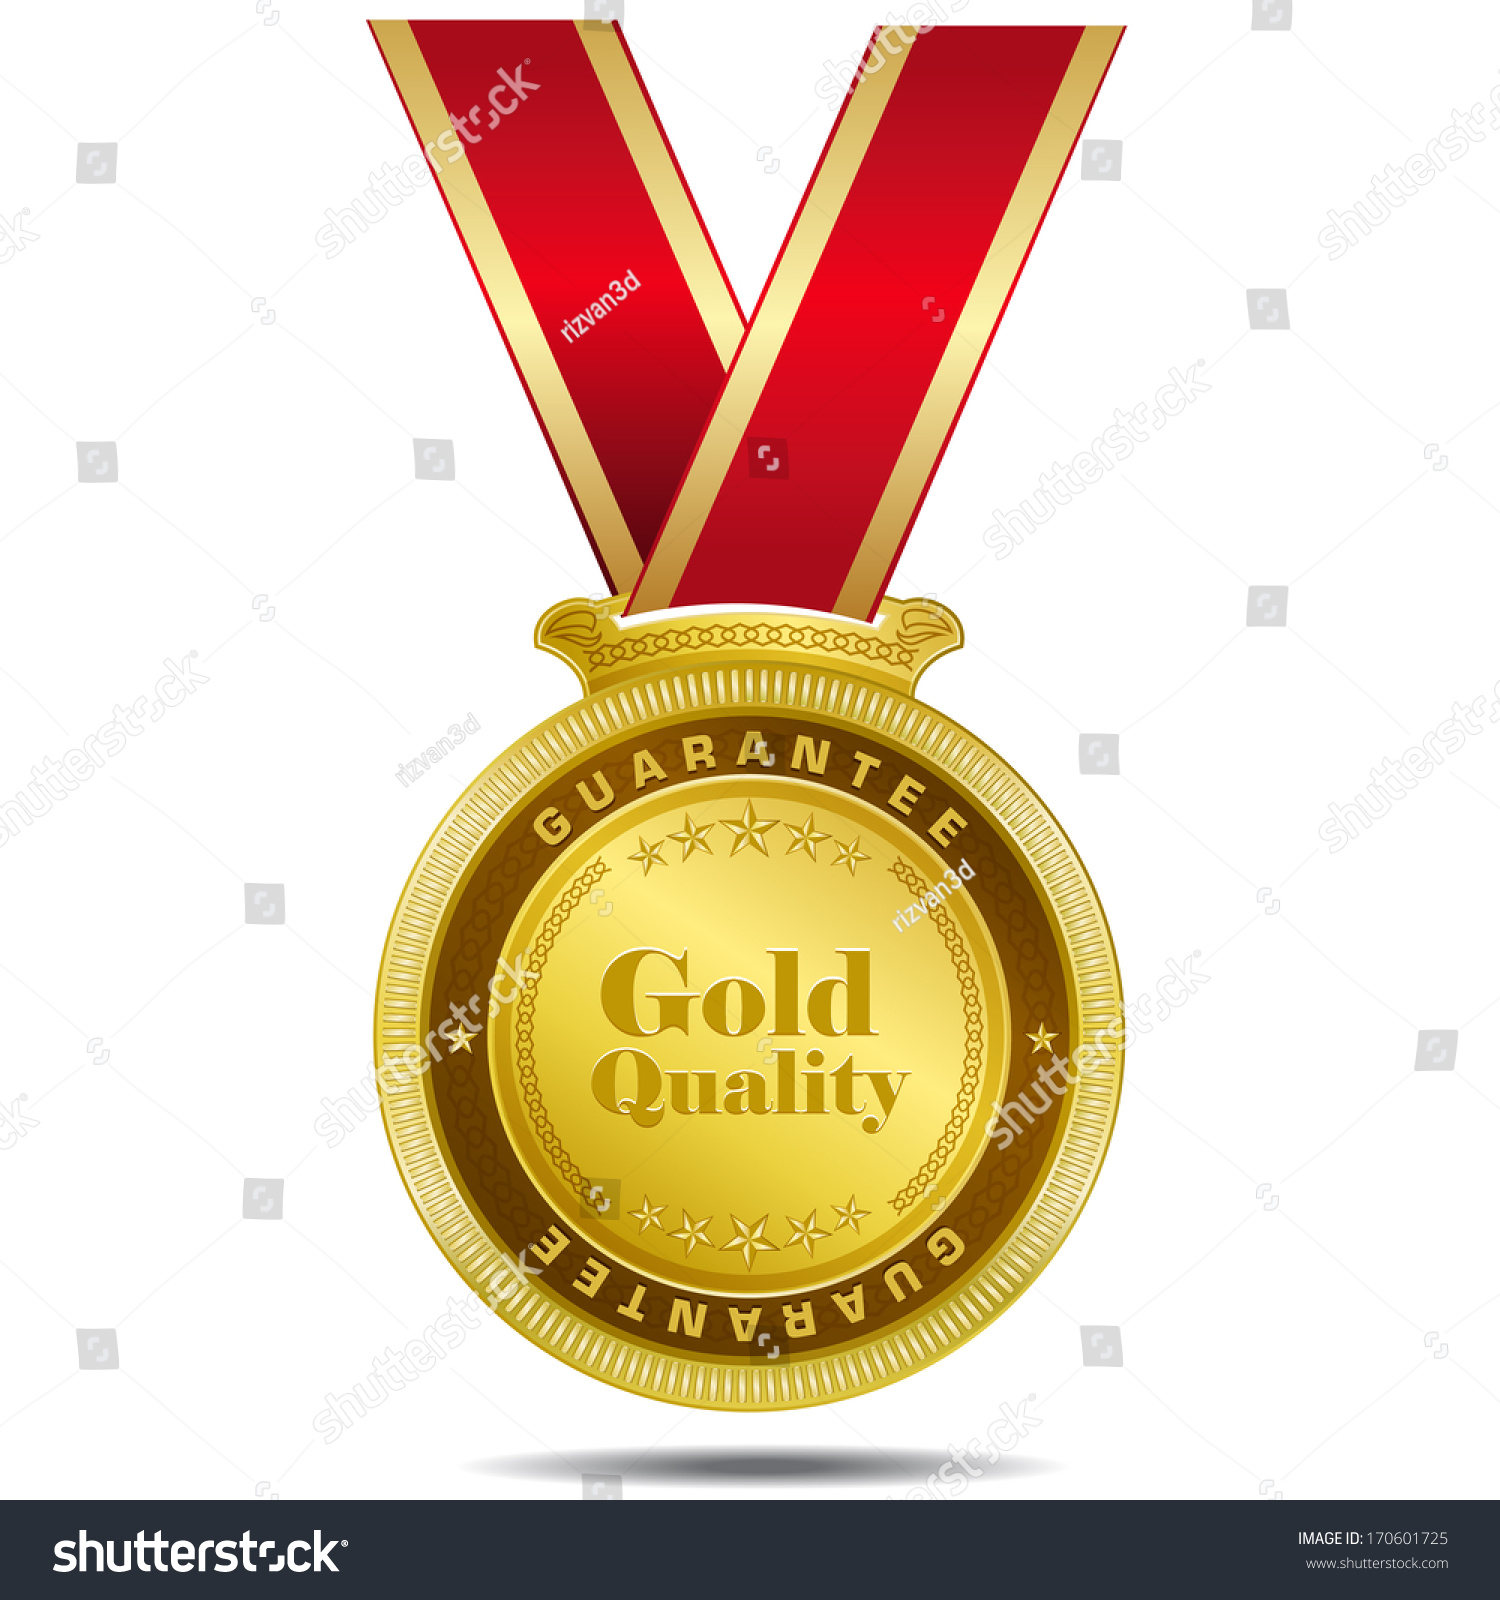 vector quality banner gold stock seal with of image template